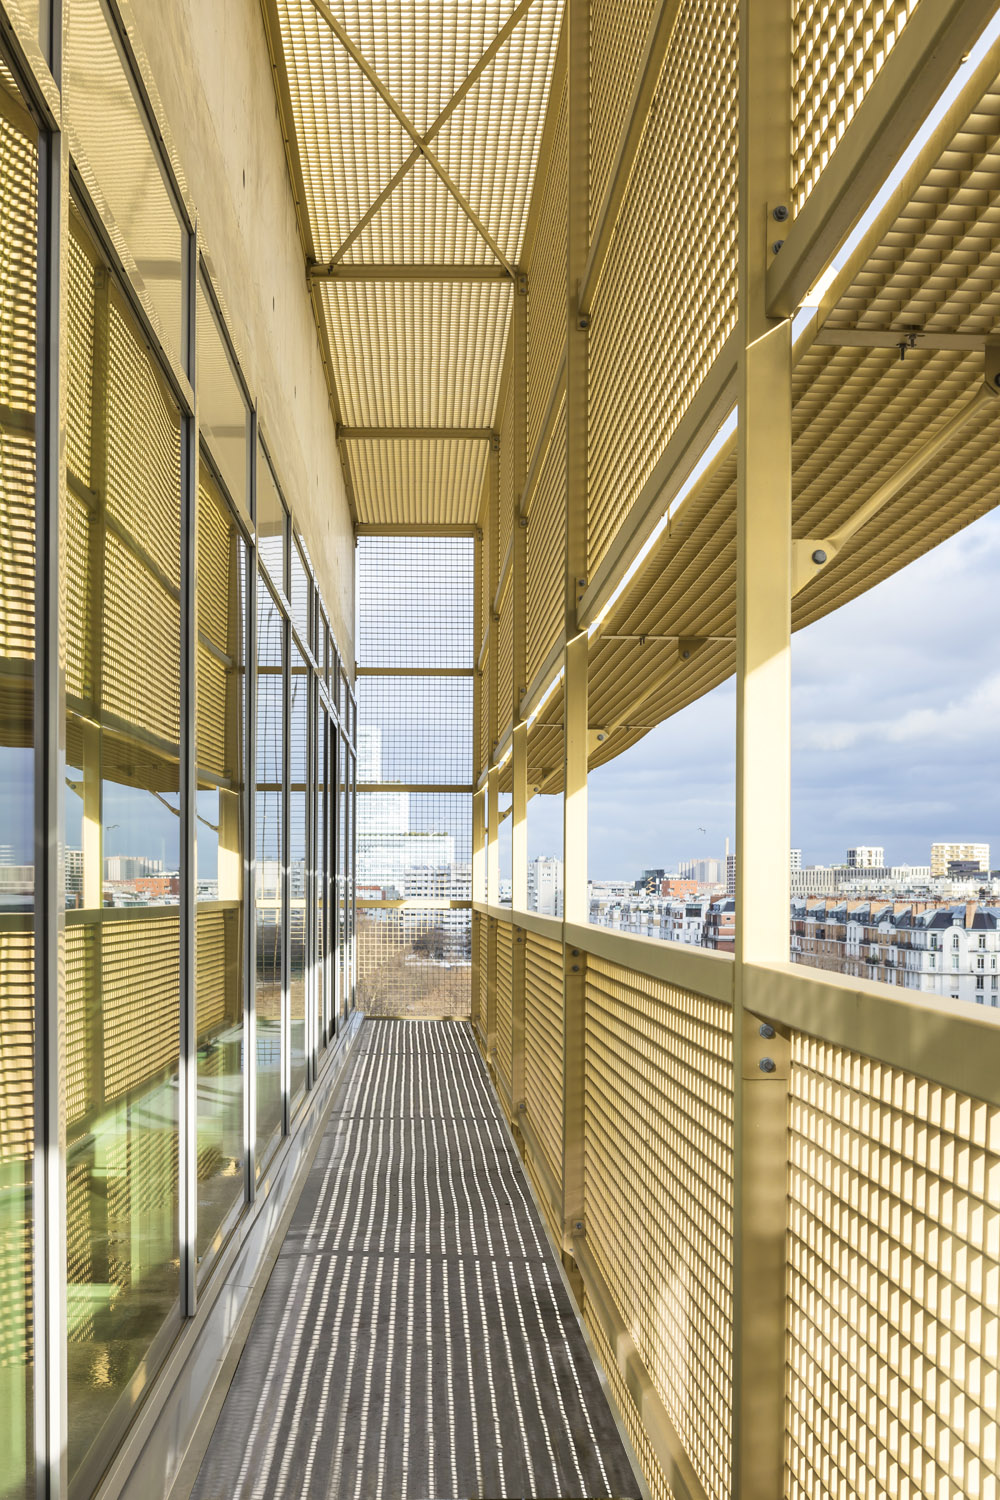 View from the associativ pole's terrasse ©Boegly+Grazia